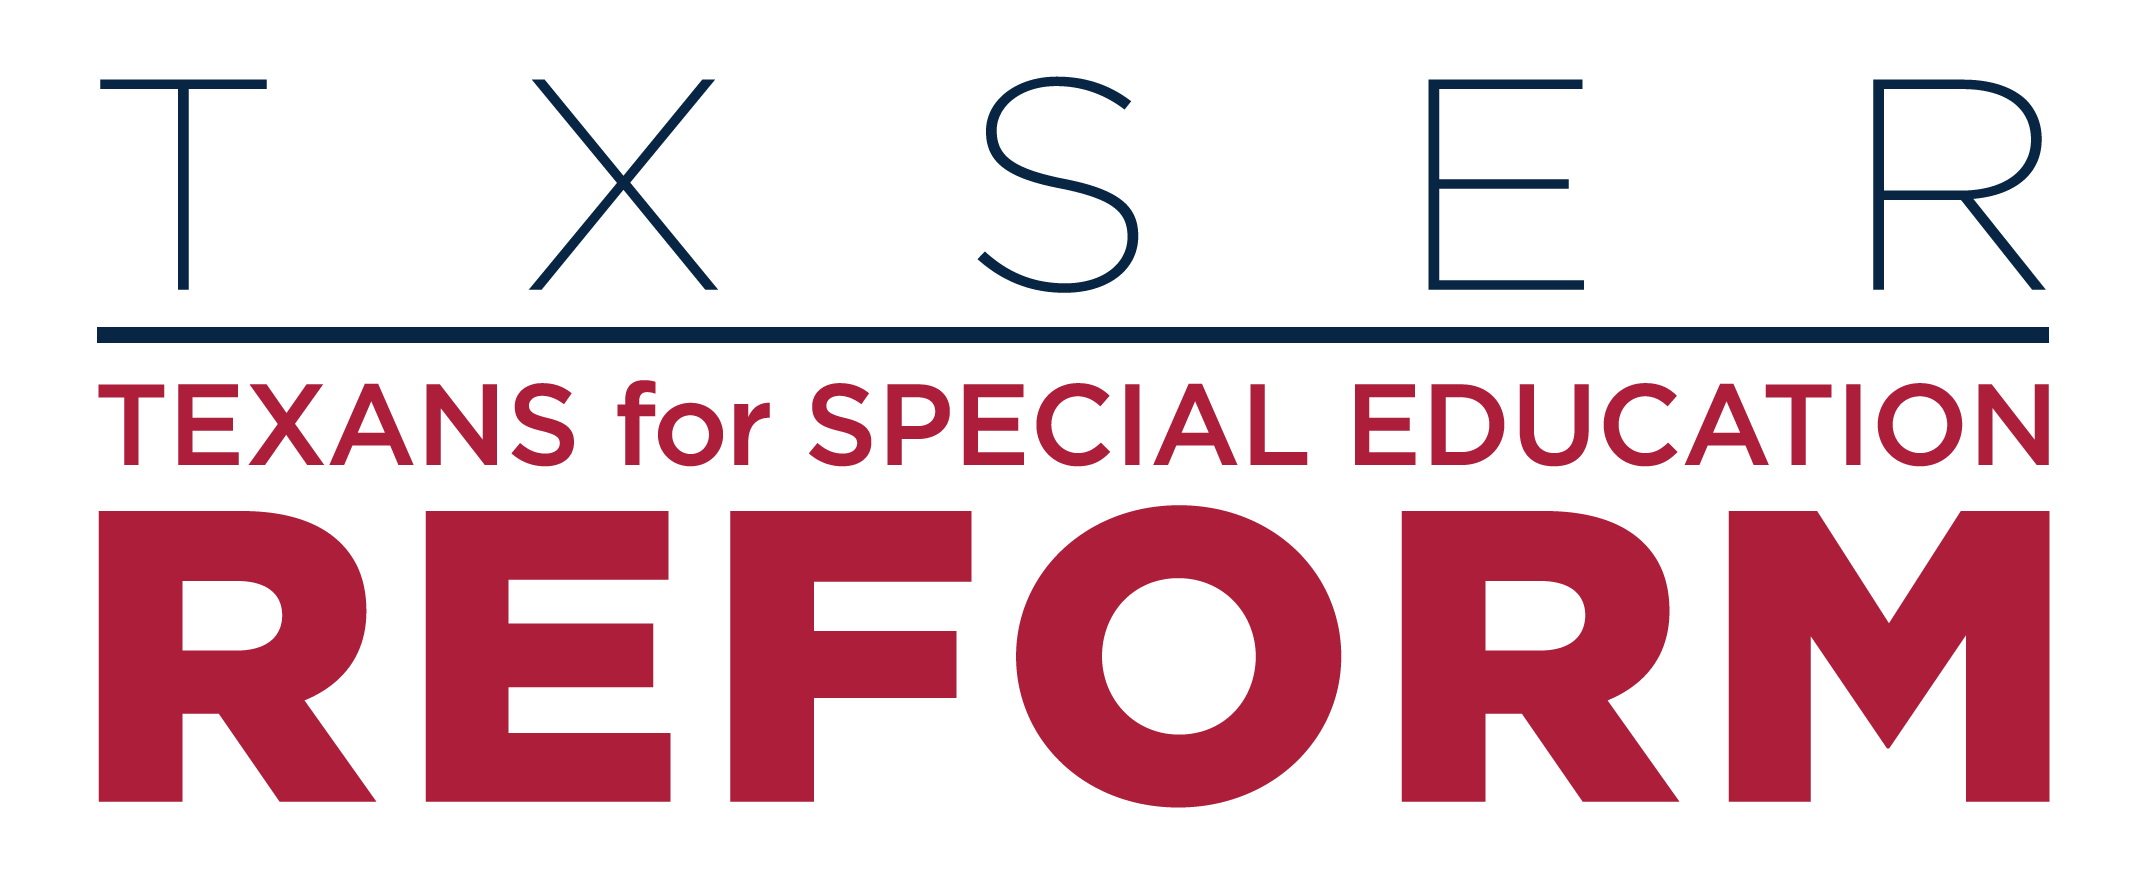 Texans for Special Education Reform logo